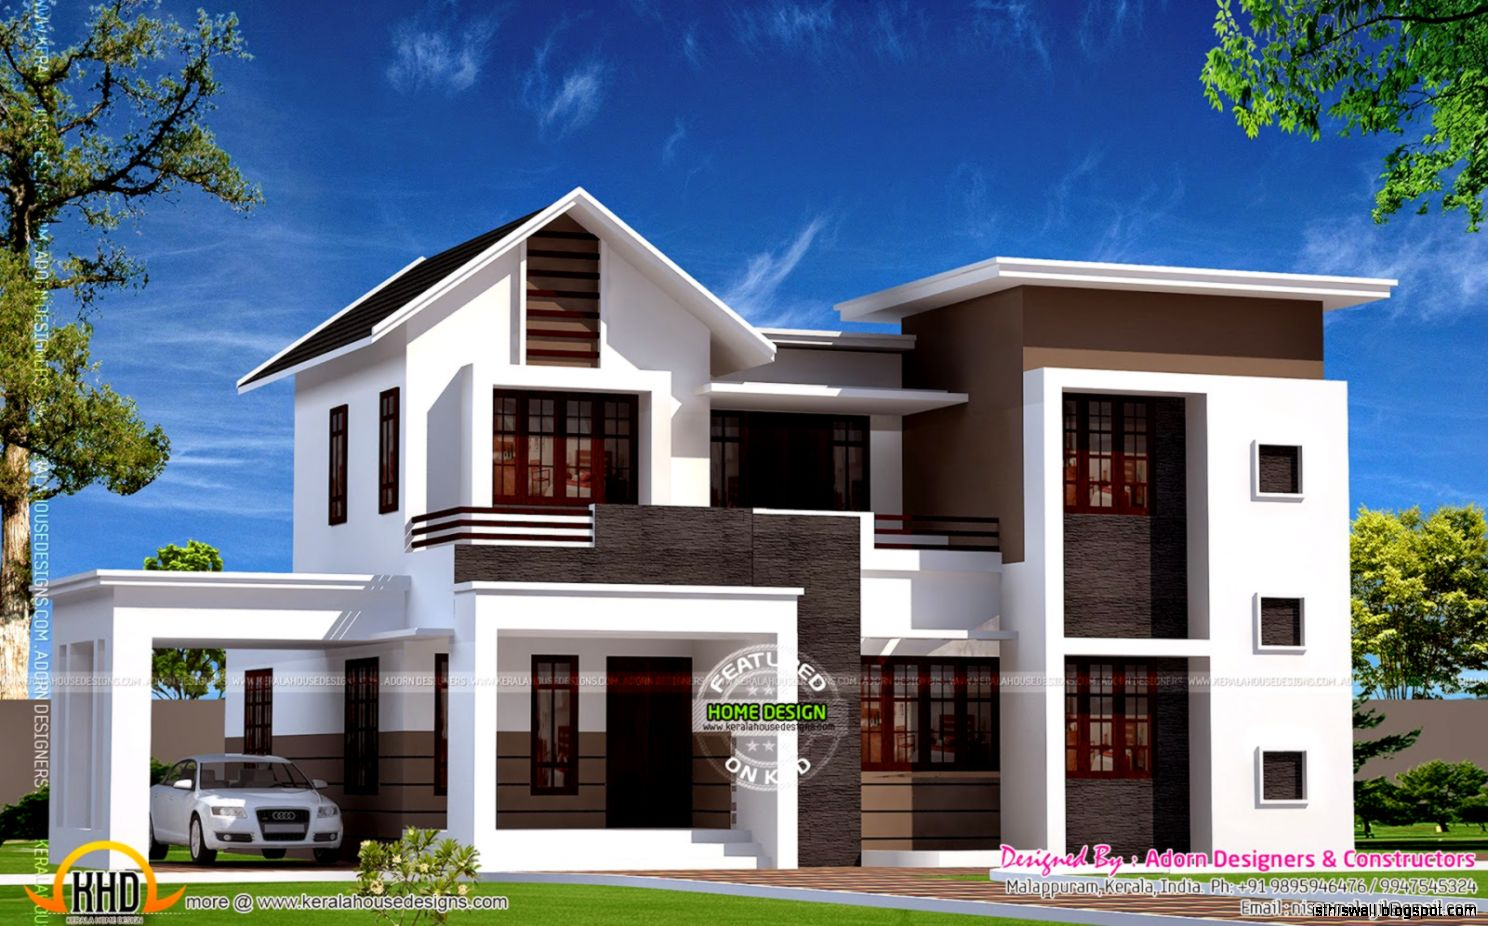 New homes designs photos this wallpapers for Kerala house plans 2014